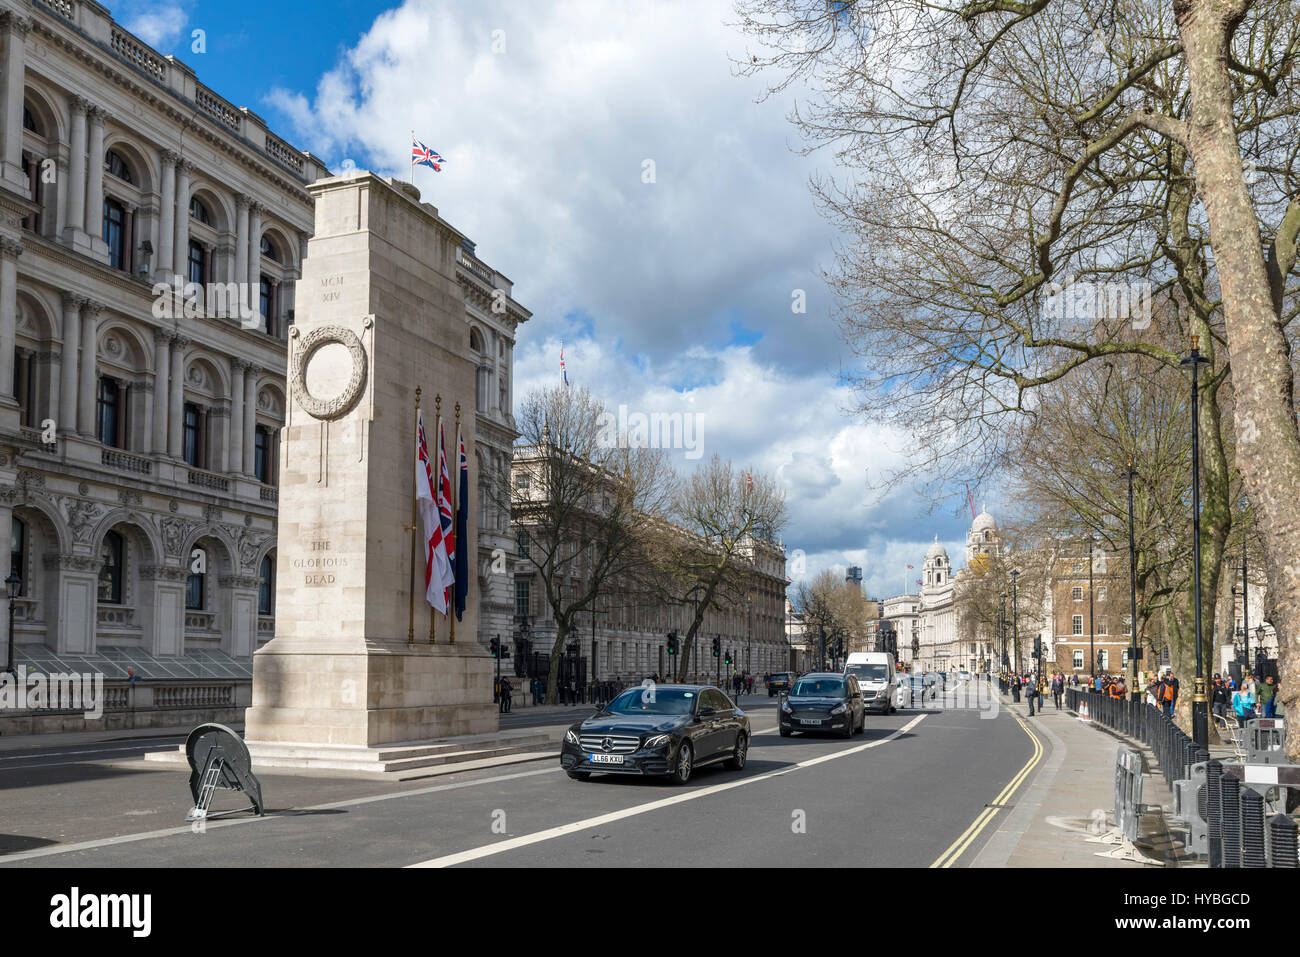 Whitehall with the Cenotaph to the left, Westminster, London, England, UK - Stock Image